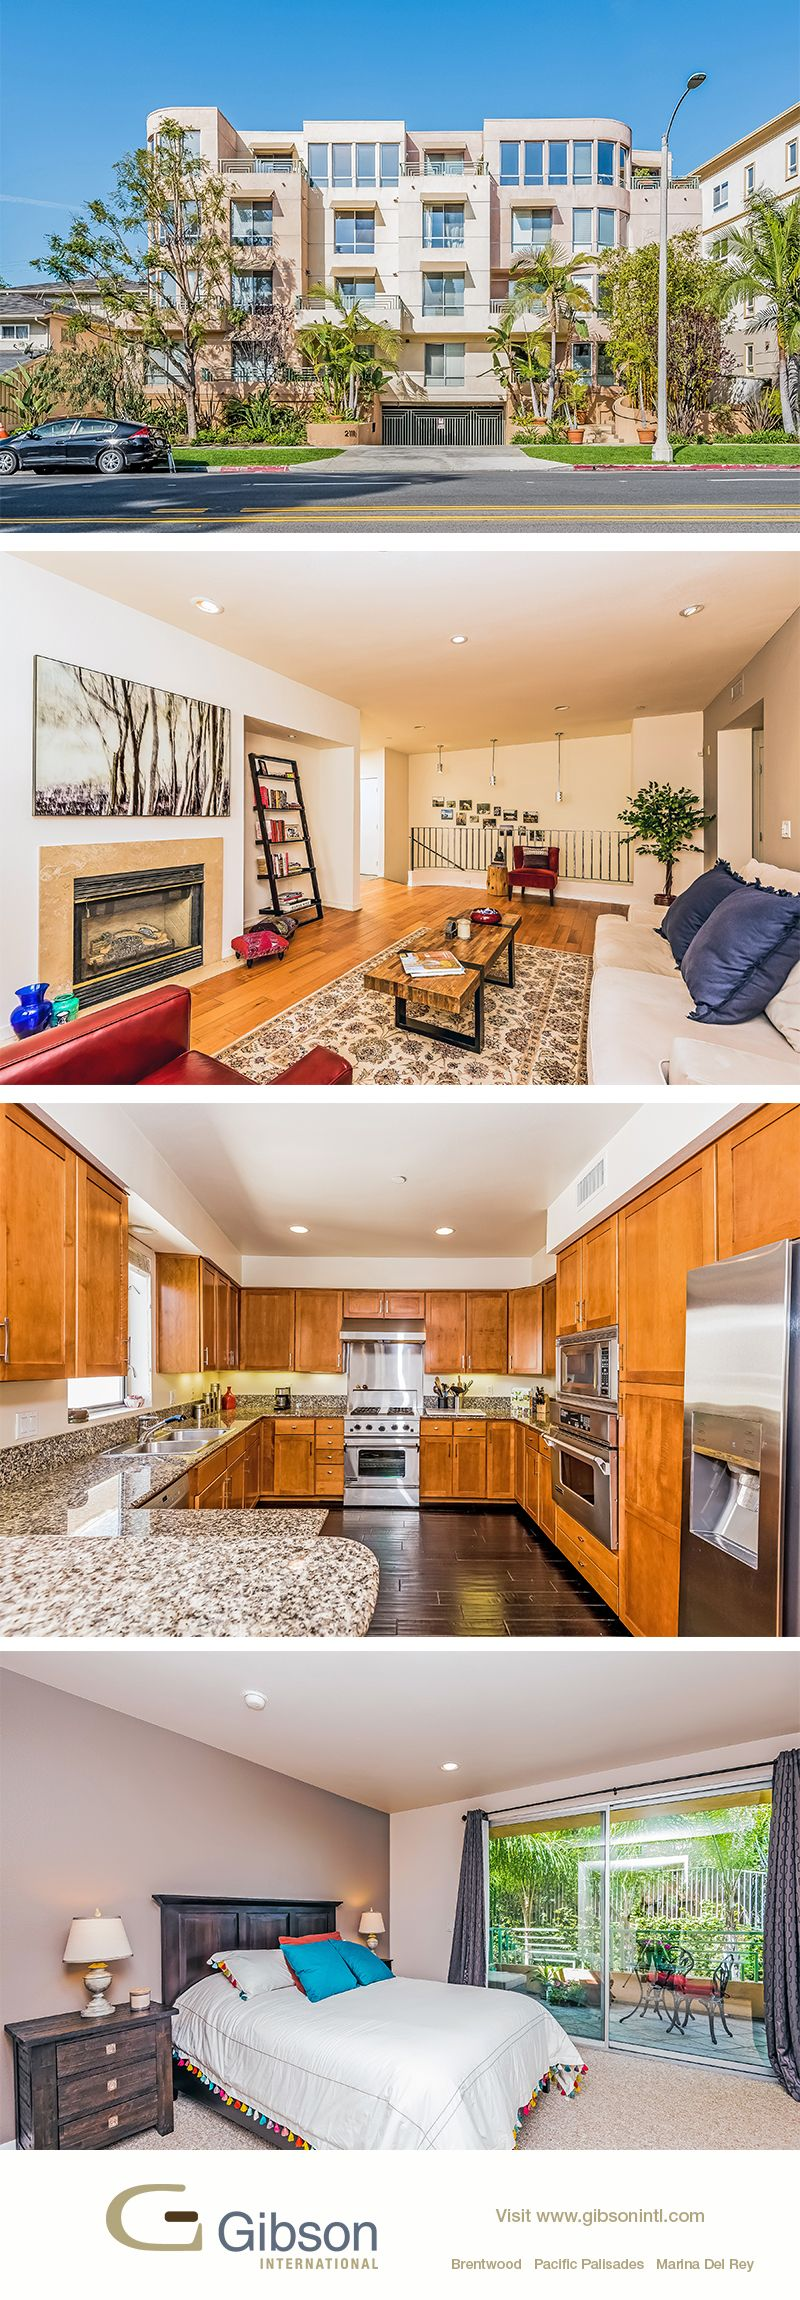 West La Penthouse With Plenty Of Space Live In A Centrally Located Neighborhood Near Freeways Century City Westw House Los Angeles Homes Apartments For Rent